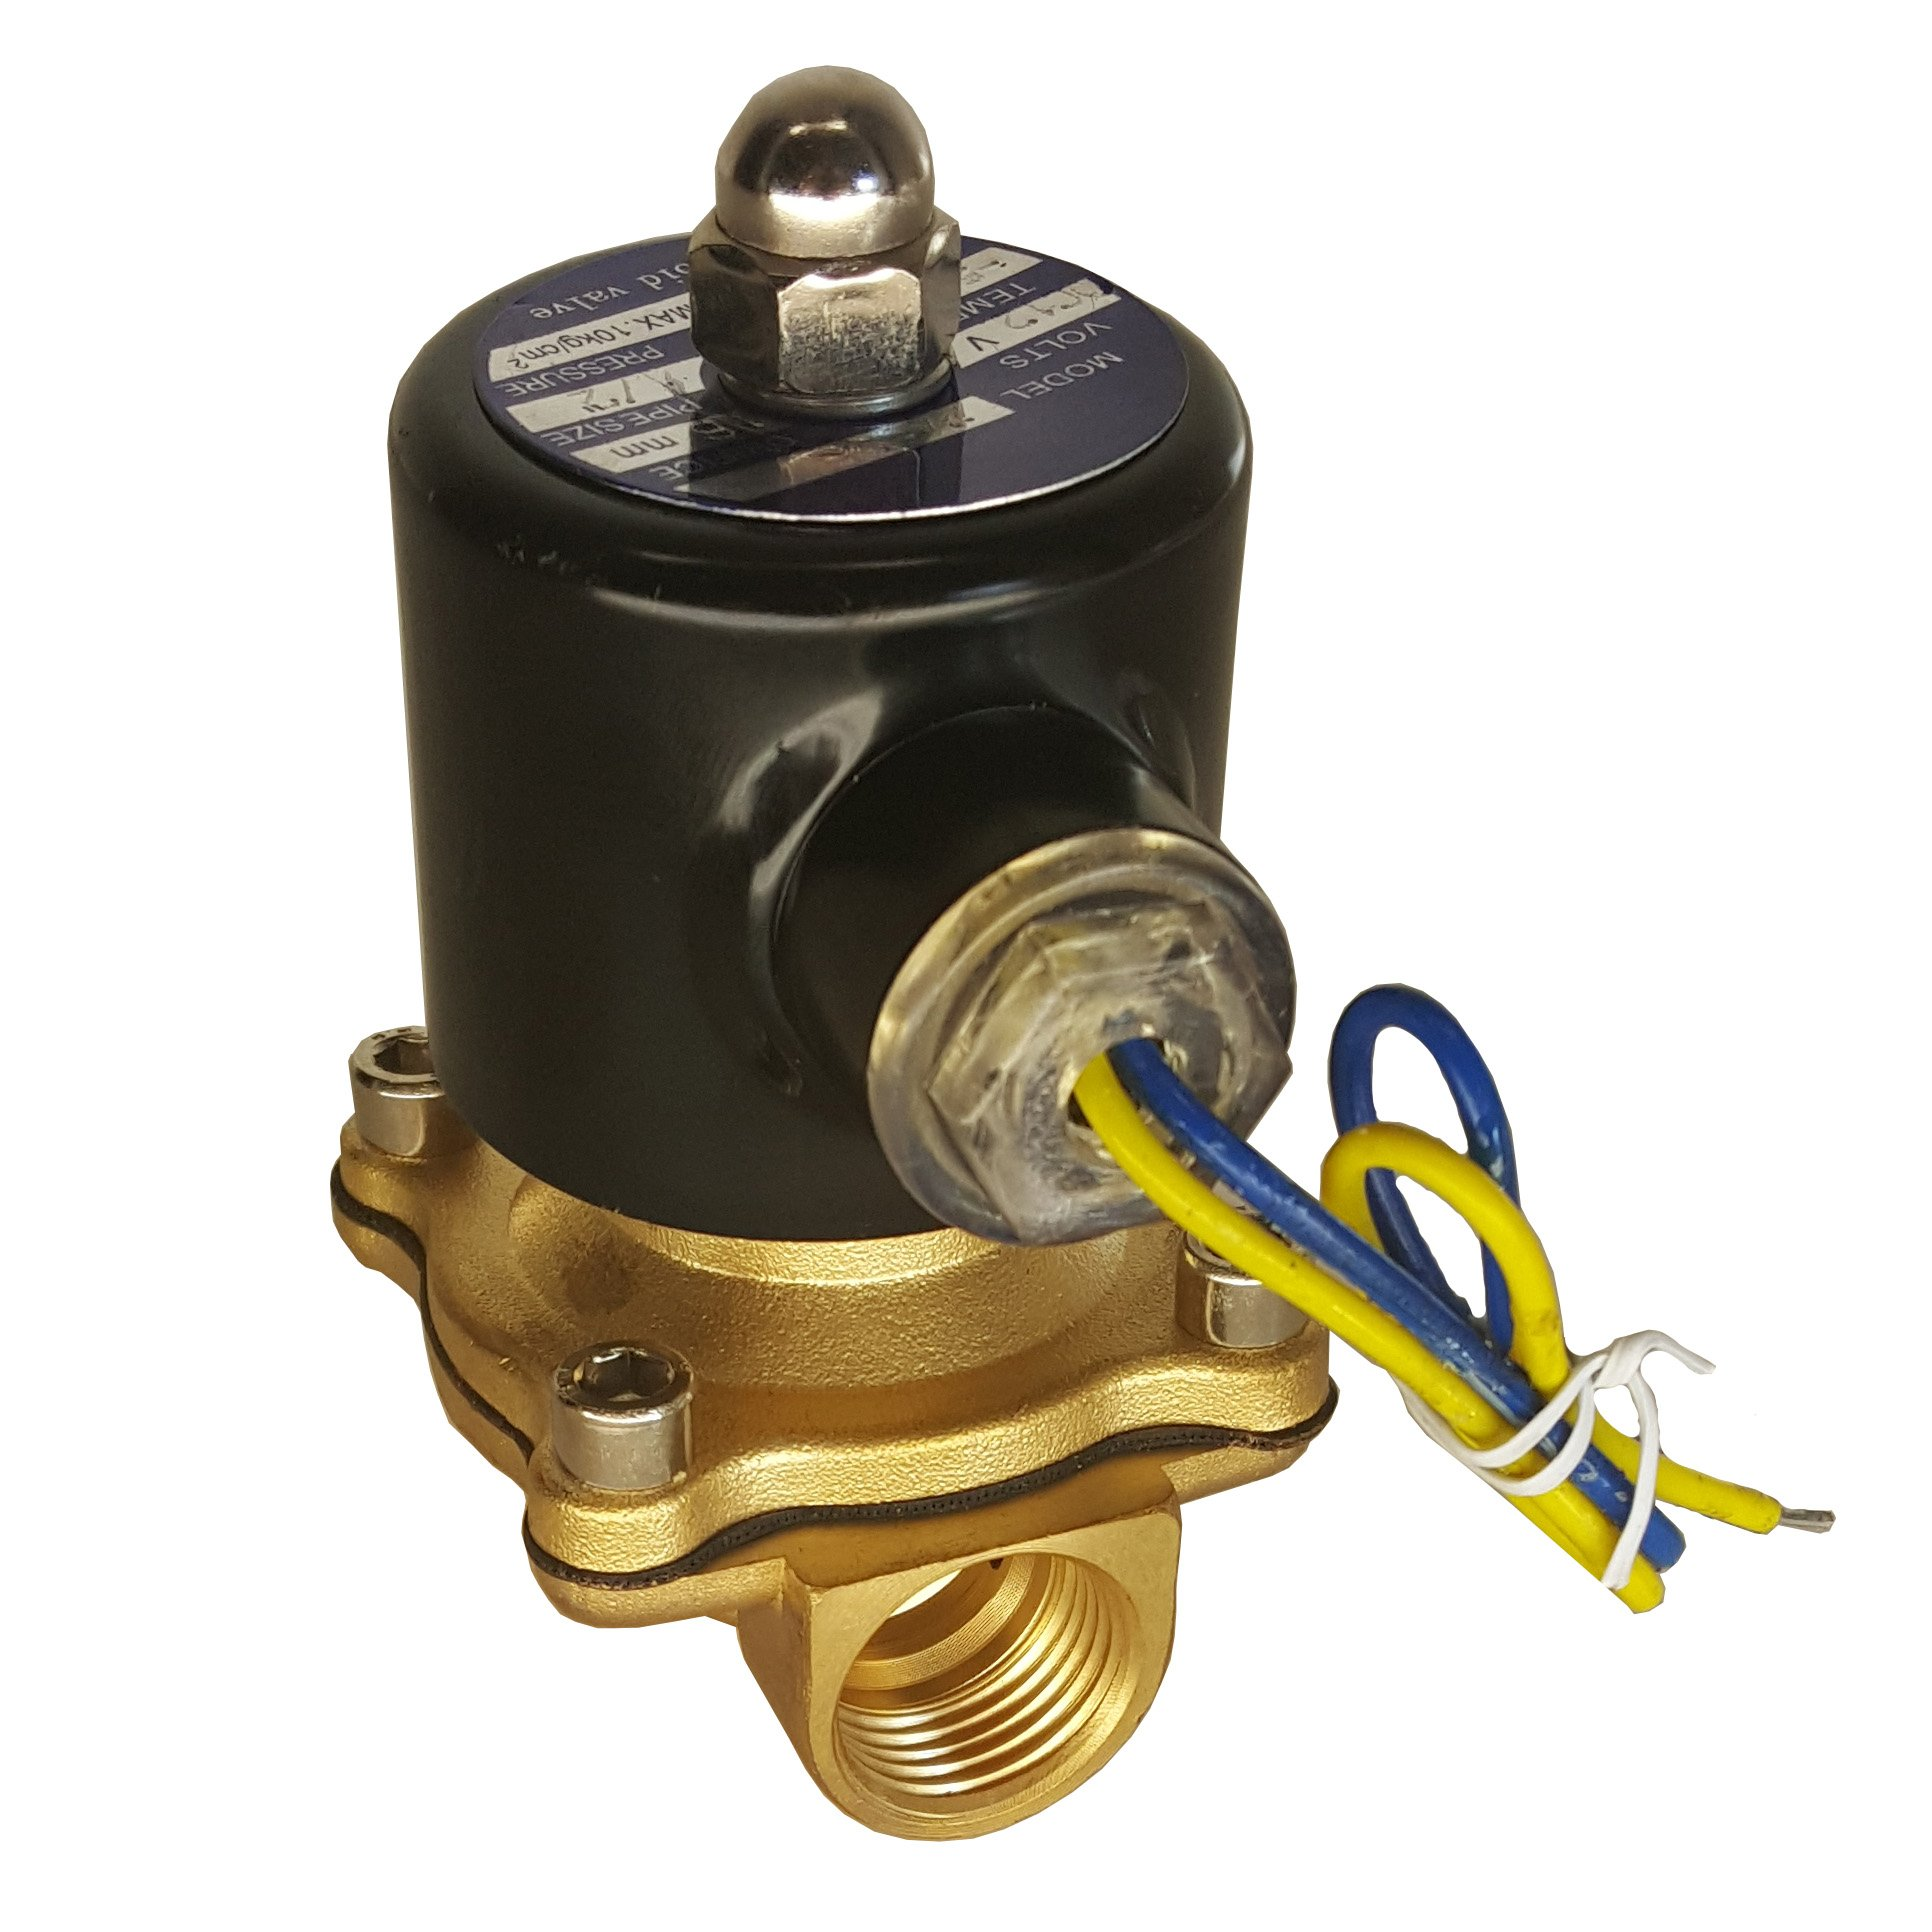 HFS 110v Ac or 12v Dc Electric Solenoid Valve Water Air Gas, Fuels N/c - 1/4'', 1/2'', 3/4'', 1'' NPT Available (12V DC 1/2'' NPT) by HFS (Image #1)